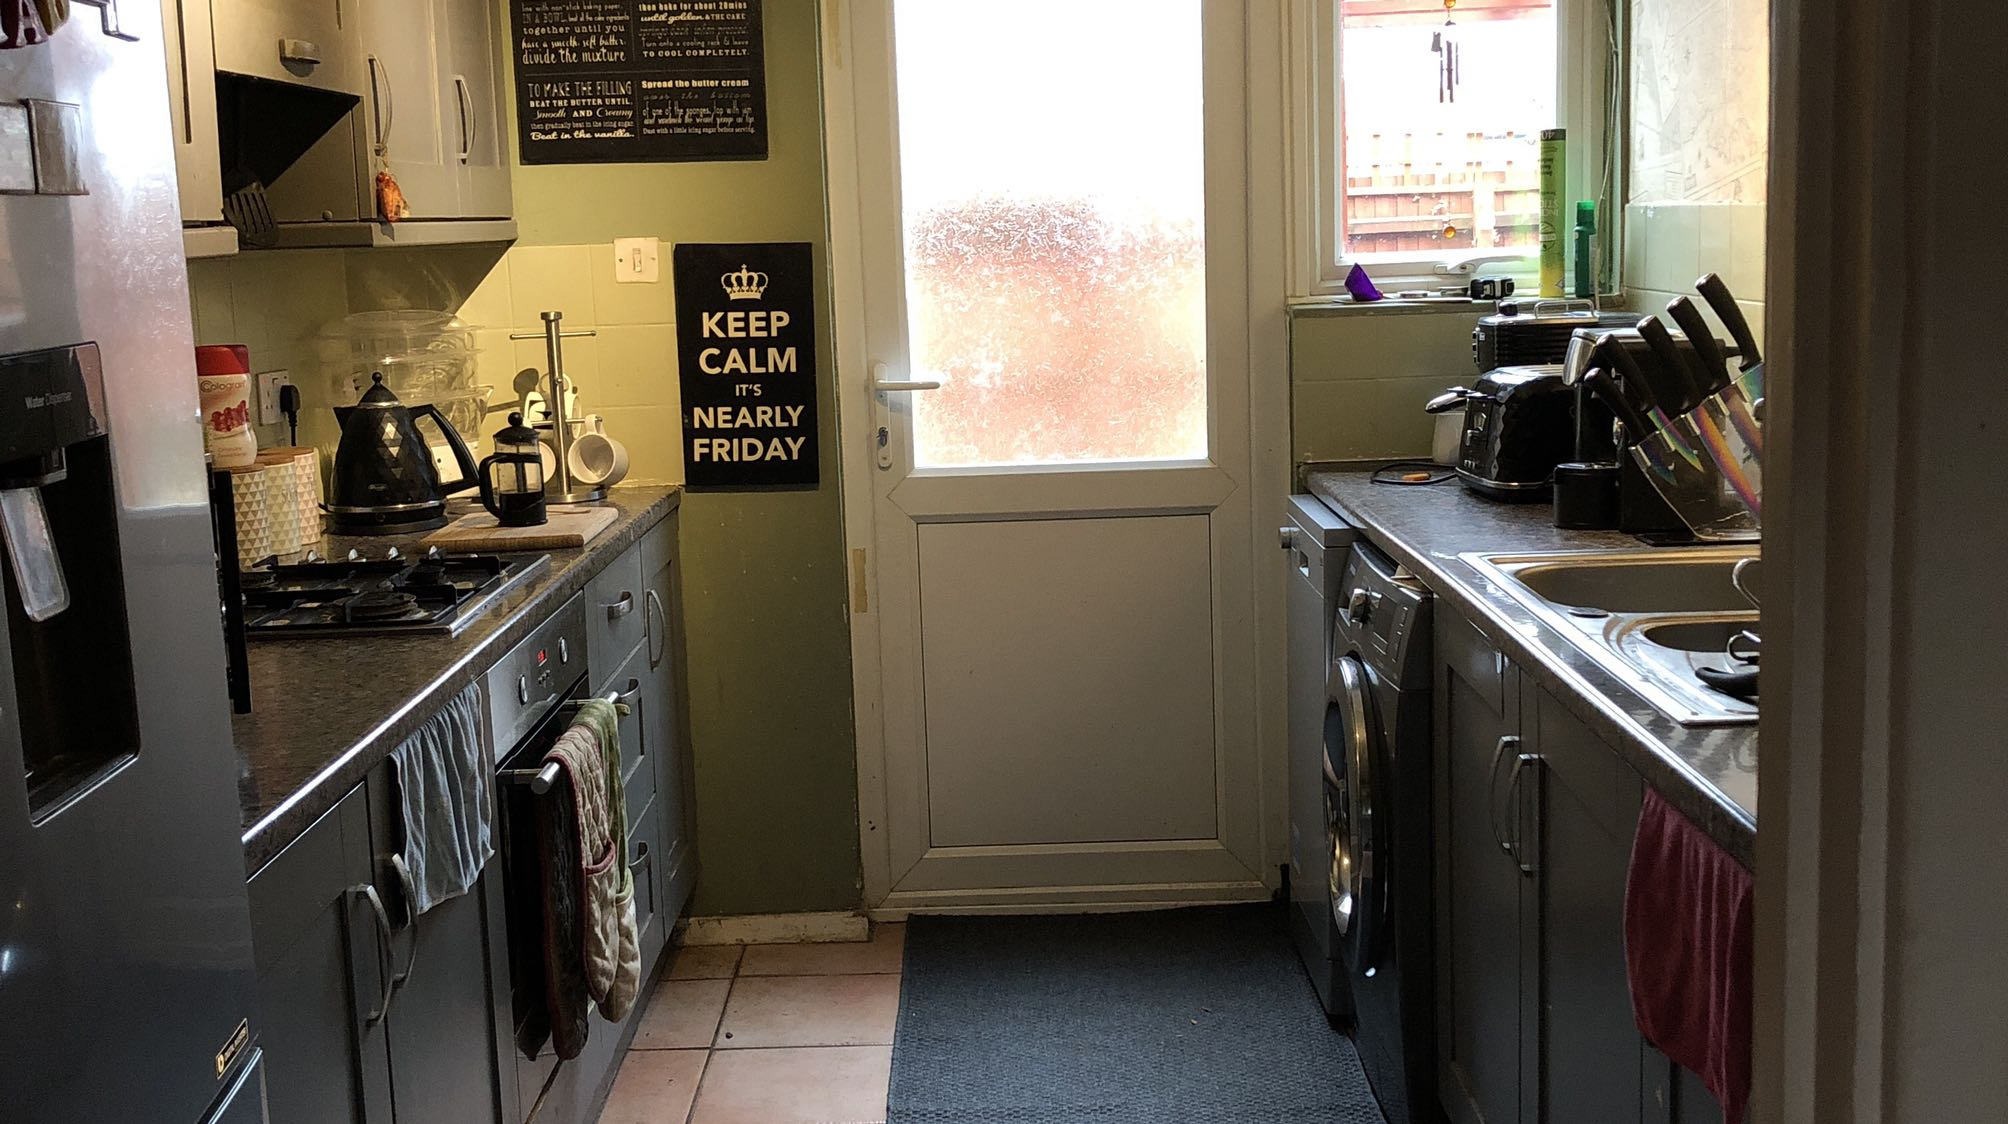 1 room in Dallington, Northampton, NN4 8TL RoomsLocal image